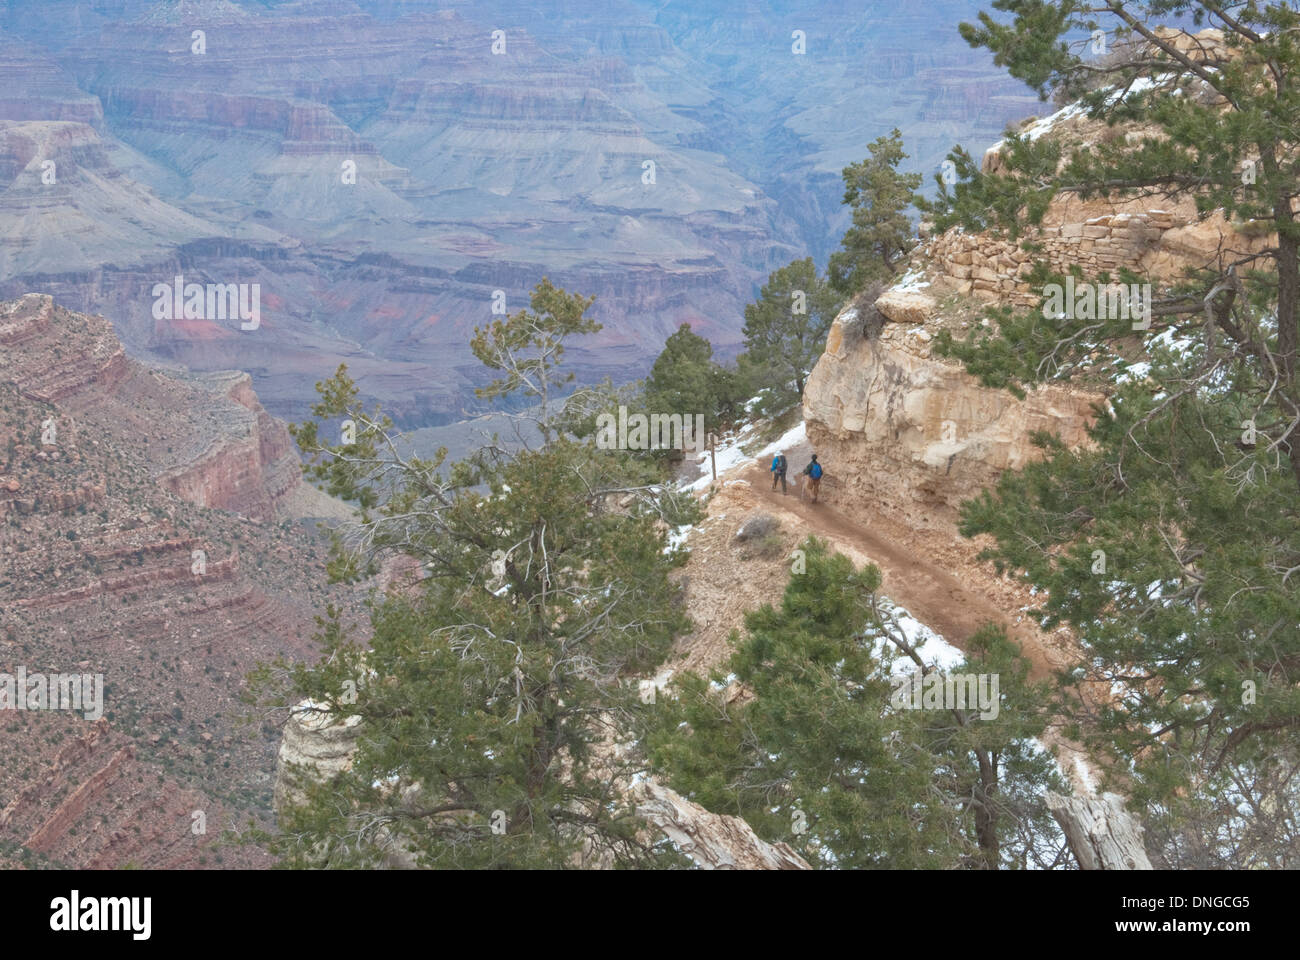 From the rim of the Grand Canyon, one can see hikers on trails far below. - Stock Image